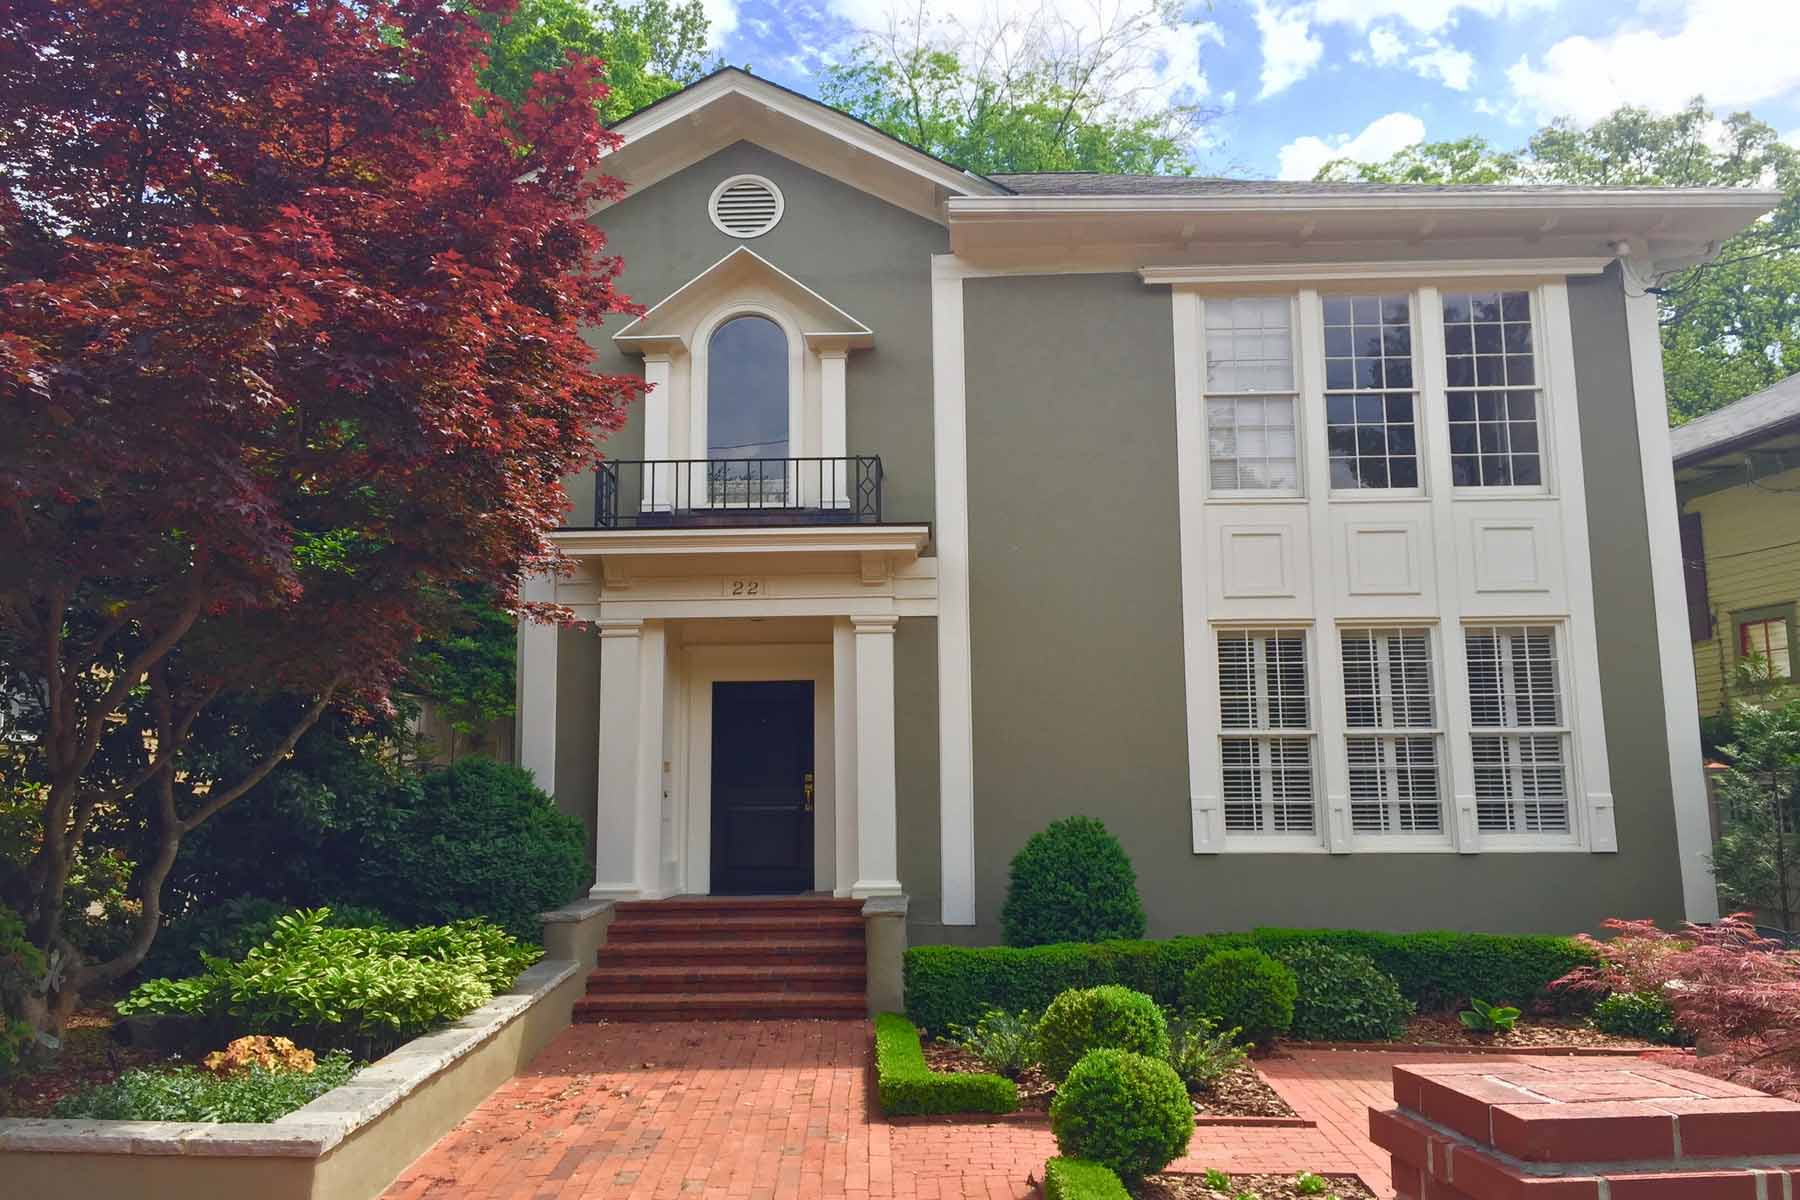 단독 가정 주택 용 매매 에 Sophisicated Ansley Park home! 22 The Prado NE Ansley Park, Atlanta, 조지아, 30309 미국